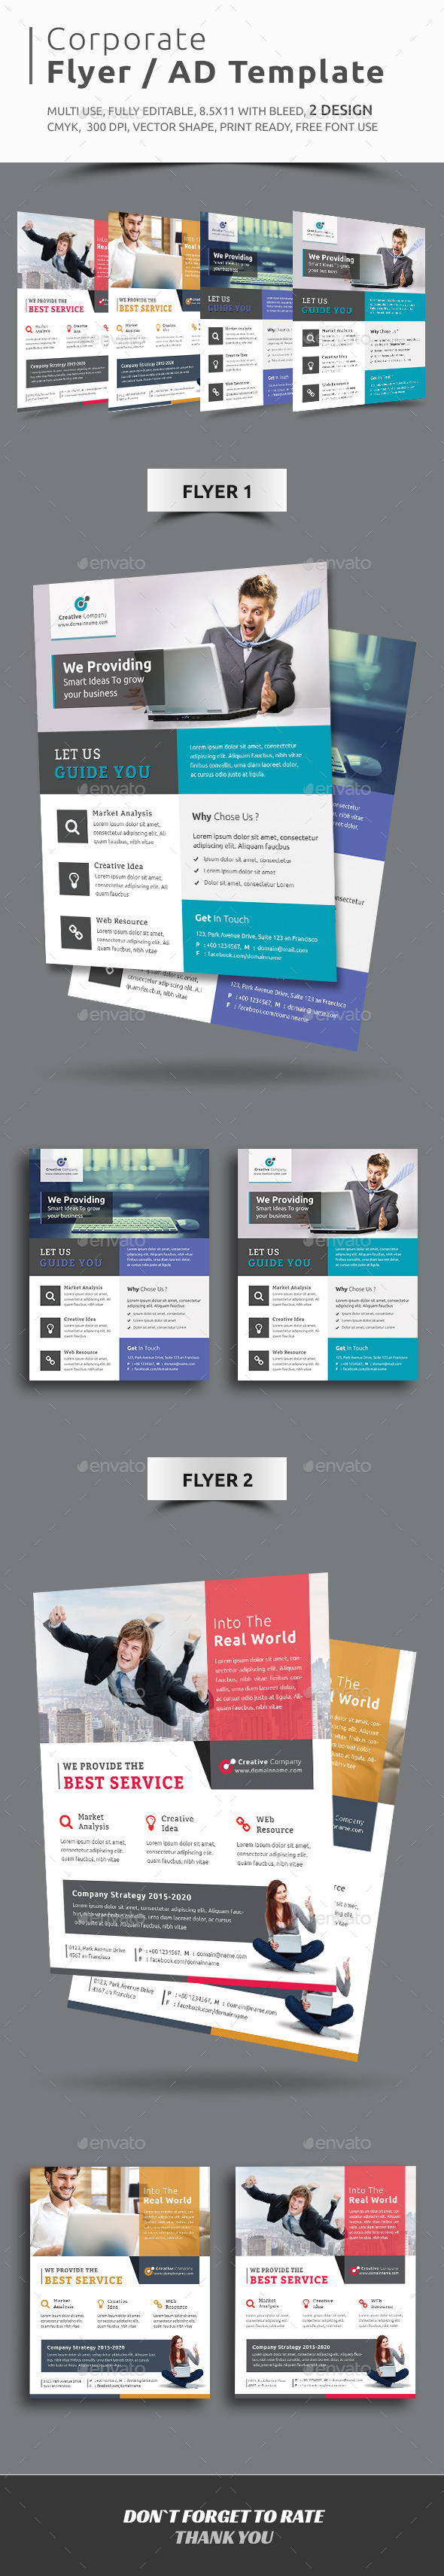 GraphicRiver Corporate Flyer AD Template 11769827